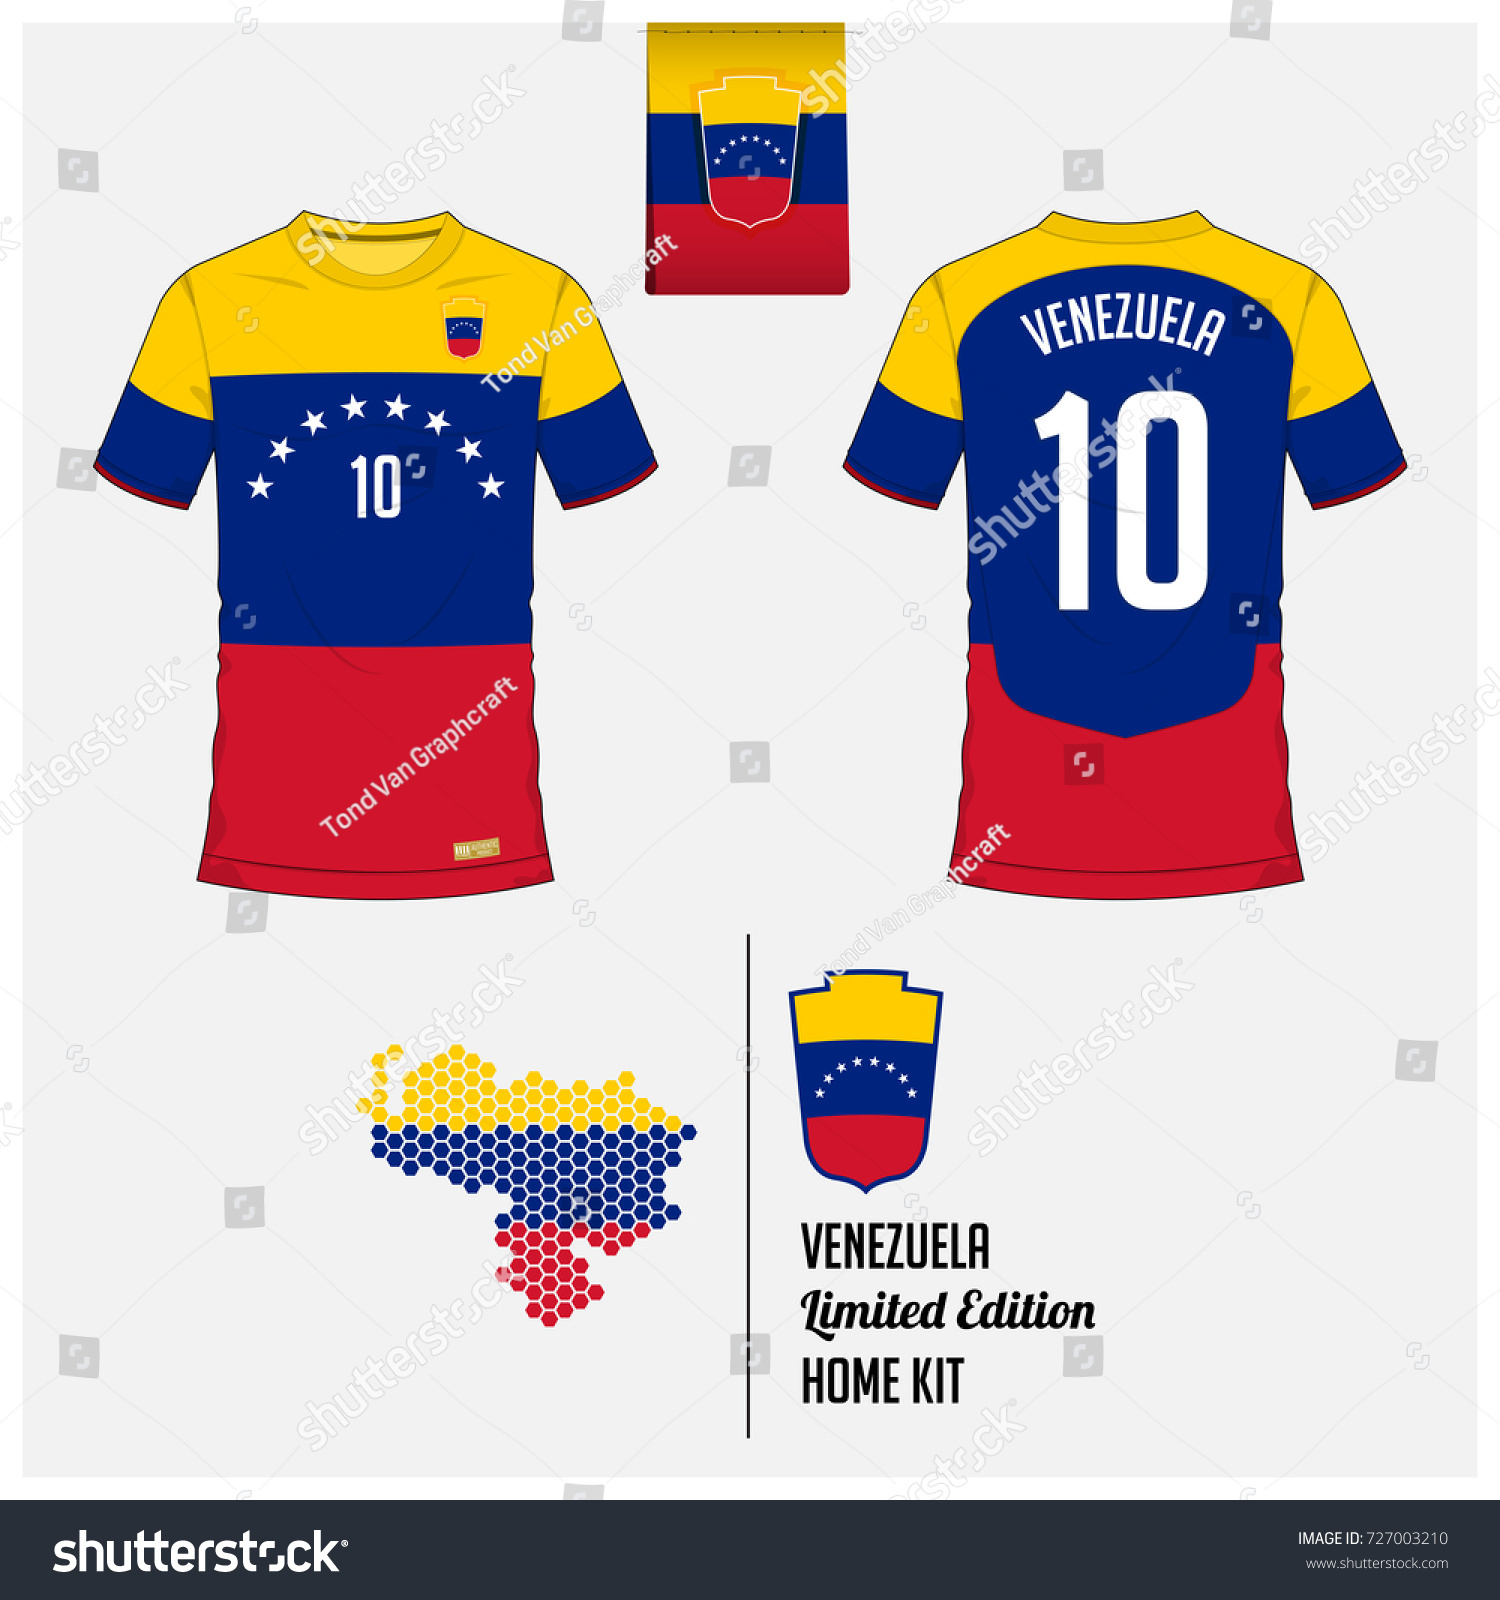 Soccer jersey football kit template venezuela stock vector soccer jersey or football kit template for venezuela national football team front and back pronofoot35fo Gallery